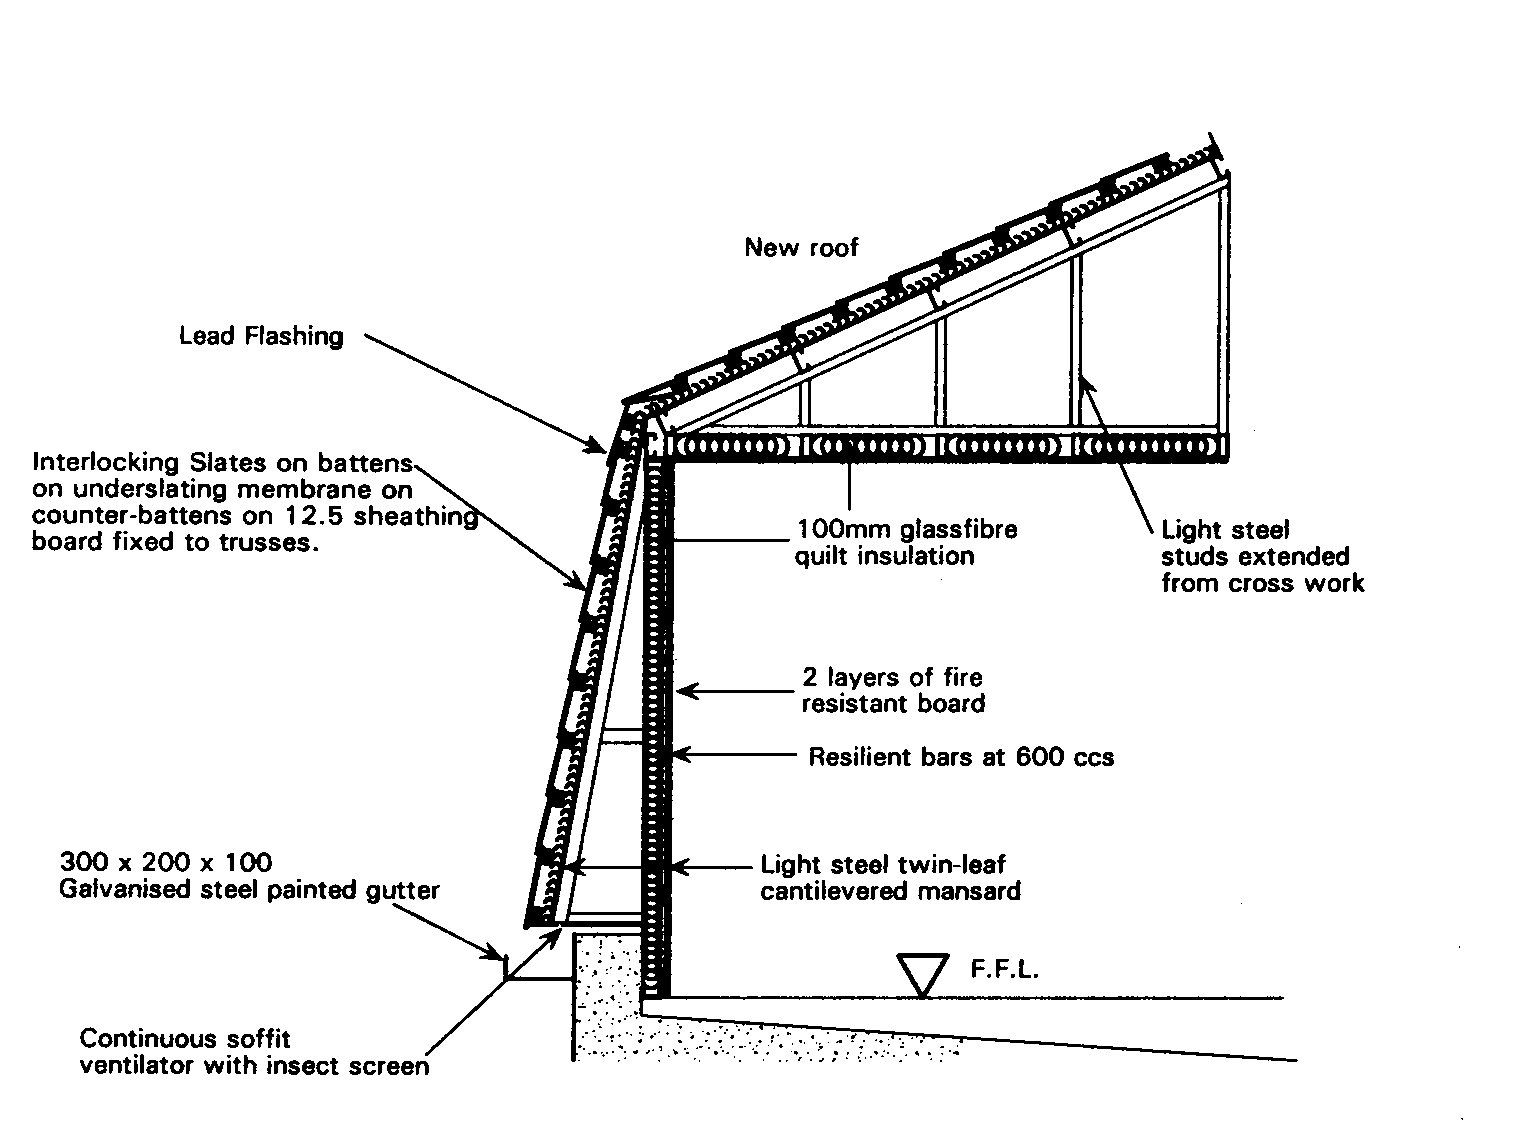 mono pitched roof construction details - Google Search | Details ...